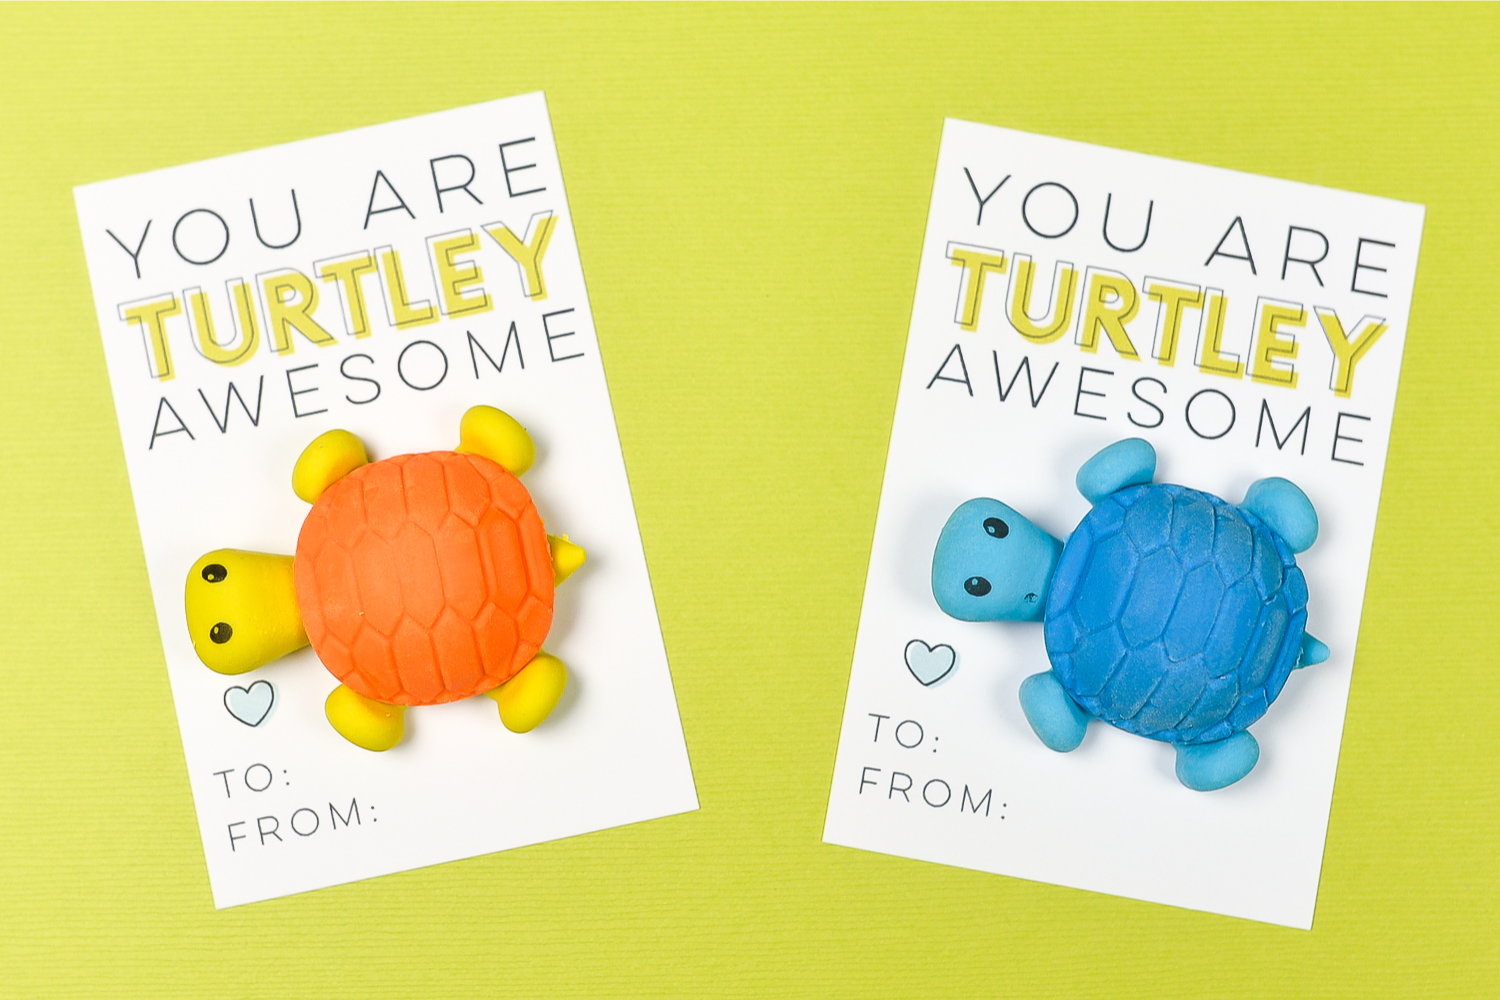 These adorable printable Turtle Valentines Day Cards are the perfect Valentine party favor or treat! Just print, add a cute novelty turtle eraser, and you're ready to go—you can make them in less than 10 minutes!